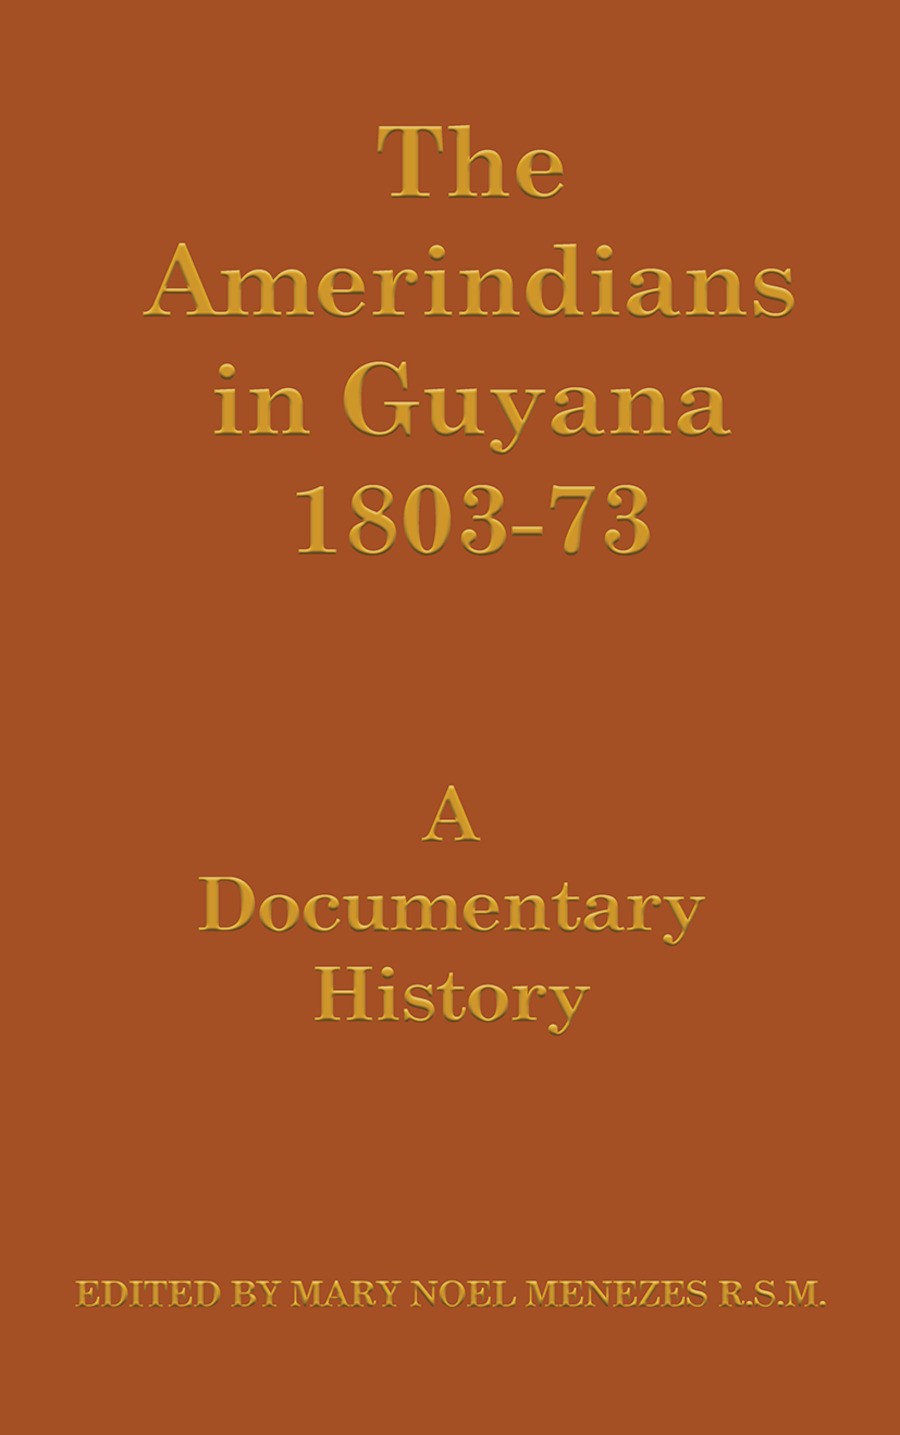 The Amerindians in Guyana 1803-1873: A Documentary History book cover